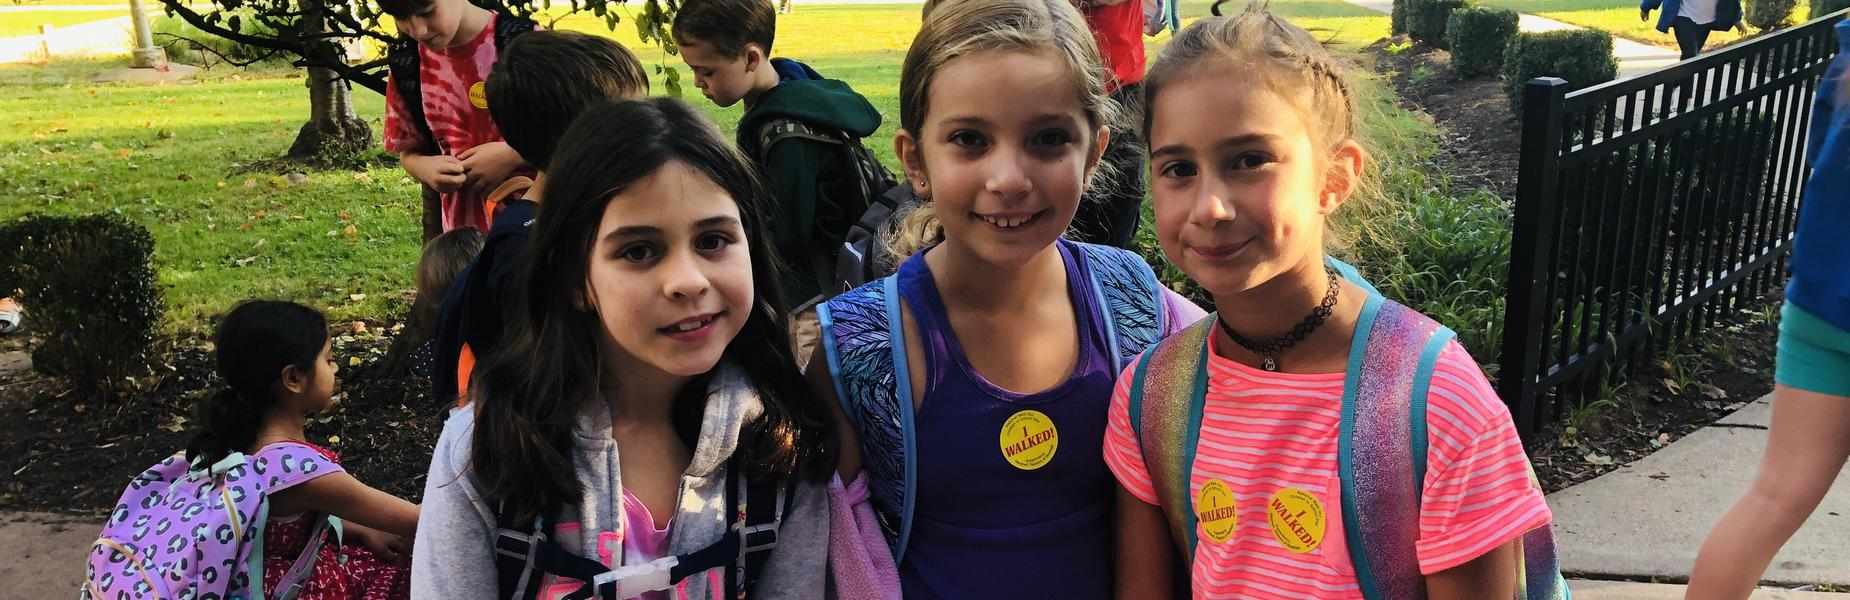 Photo of three McKinley students on Walk to School Day.